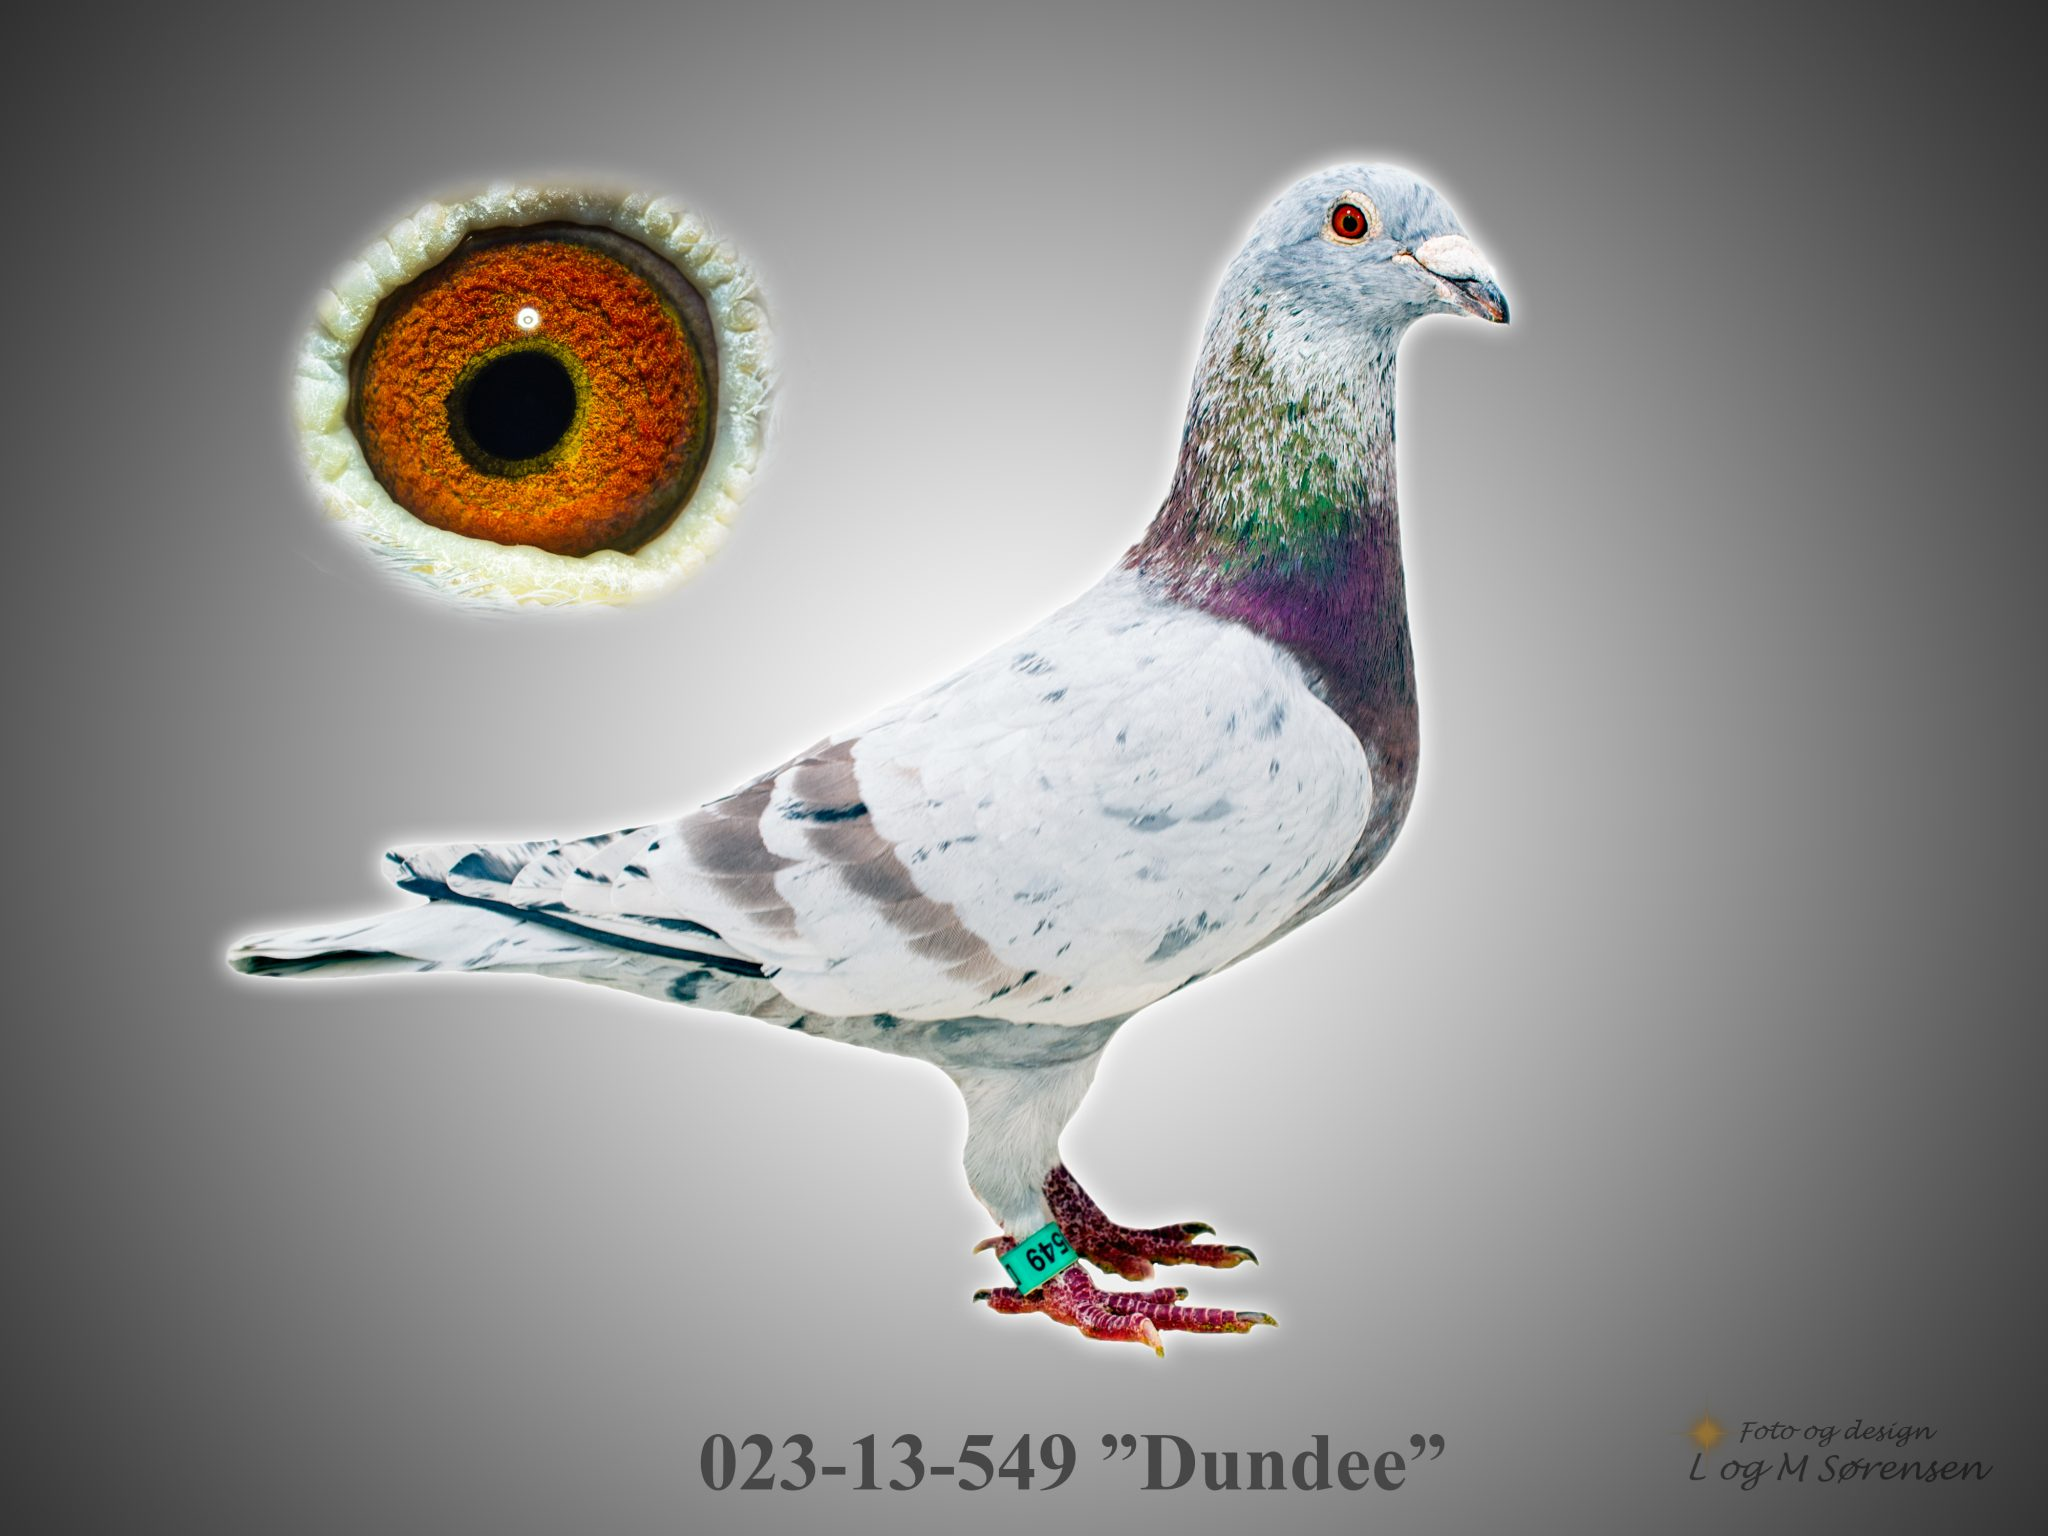 """Rede 3 023-13-549 """"Dundee"""""""